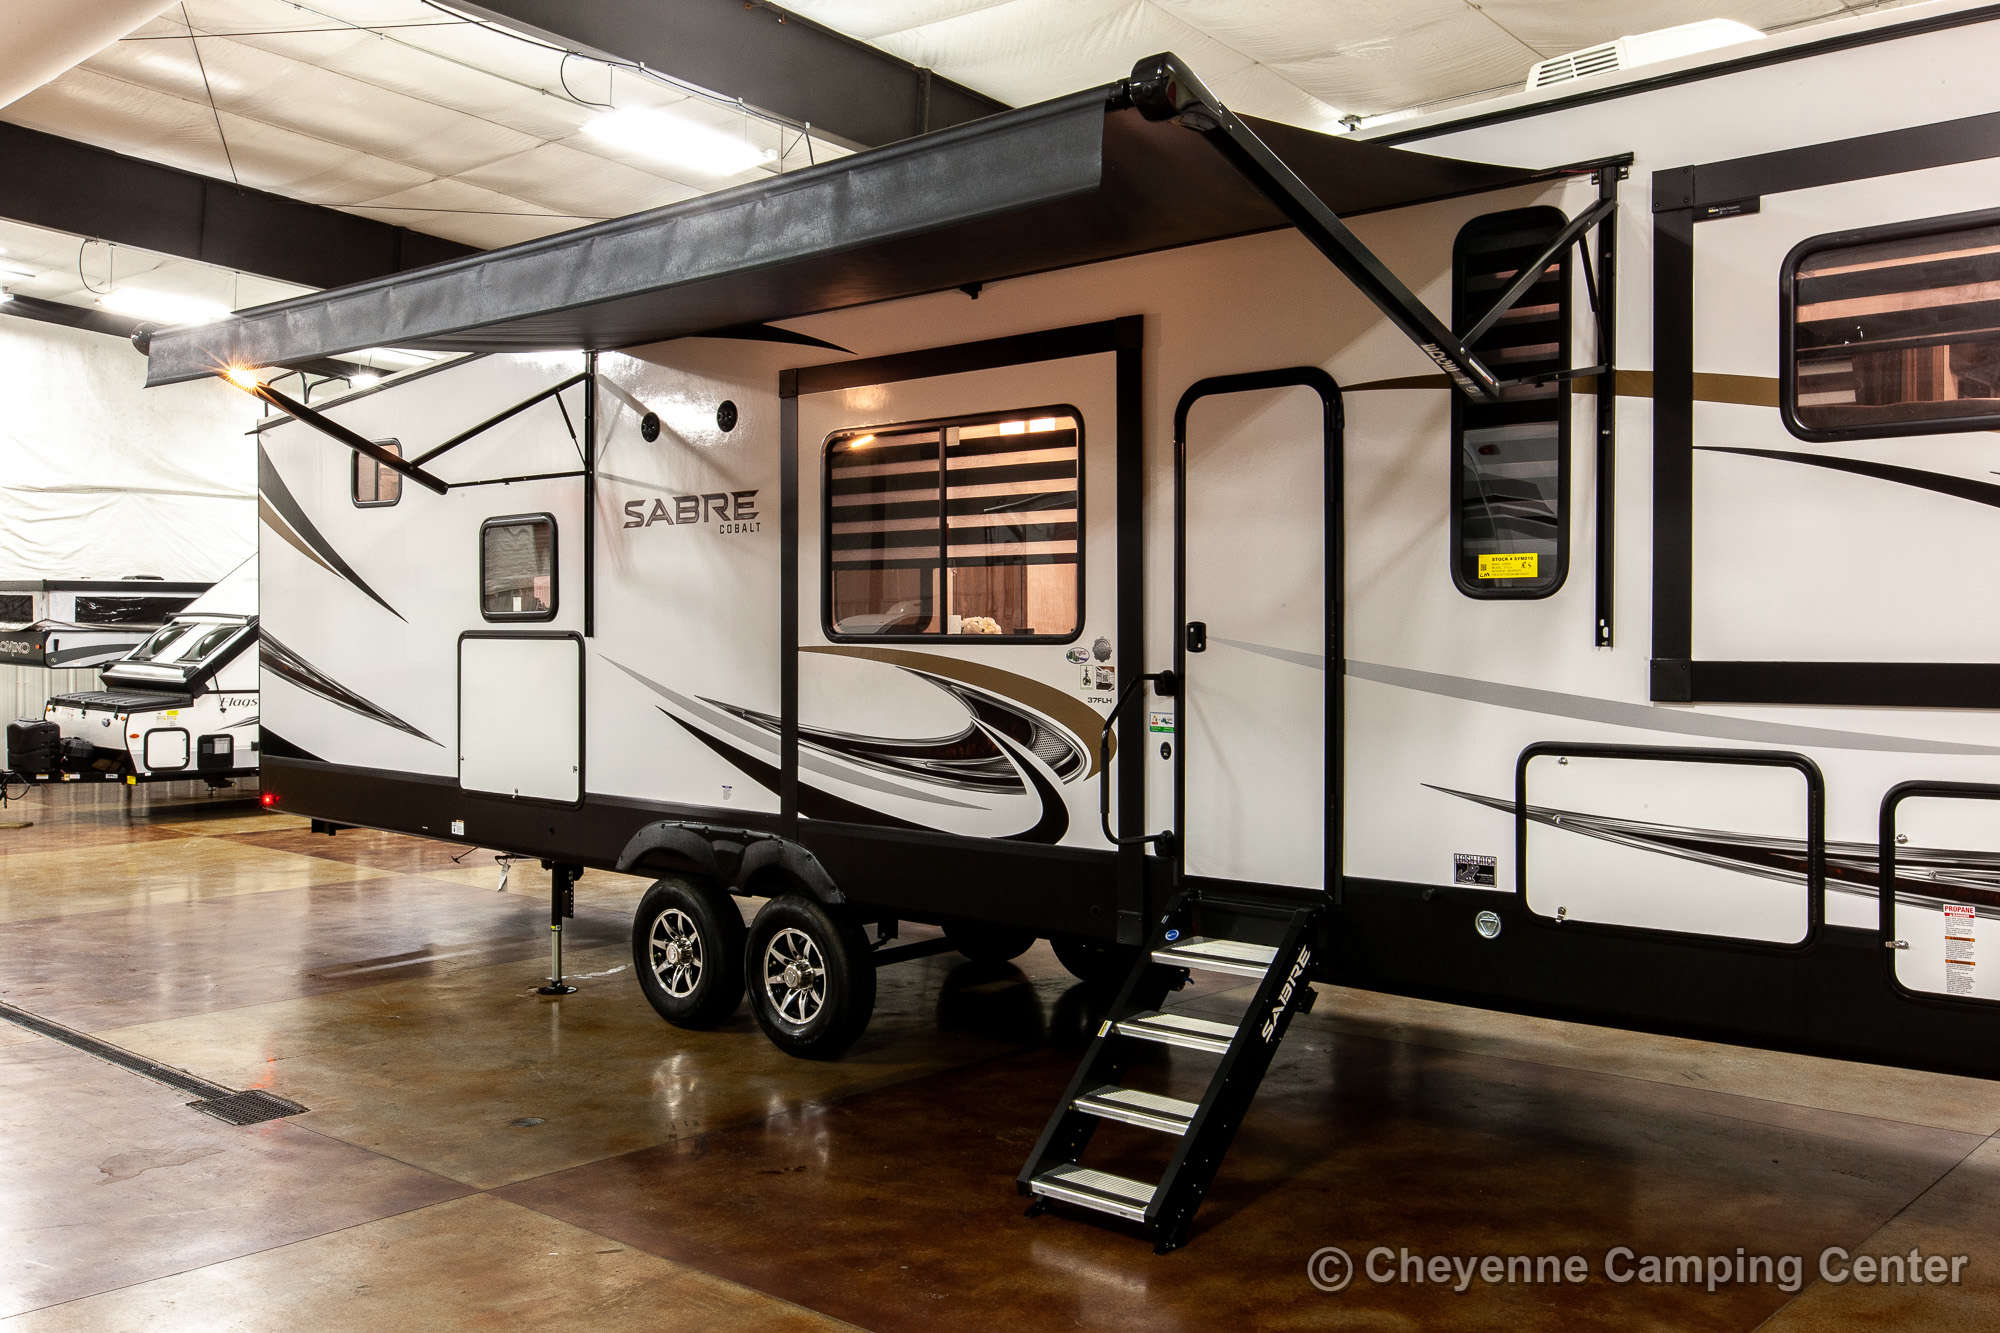 2021 Forest River Sabre Cobalt Edition 37FLH Fifth Wheel Exterior Image